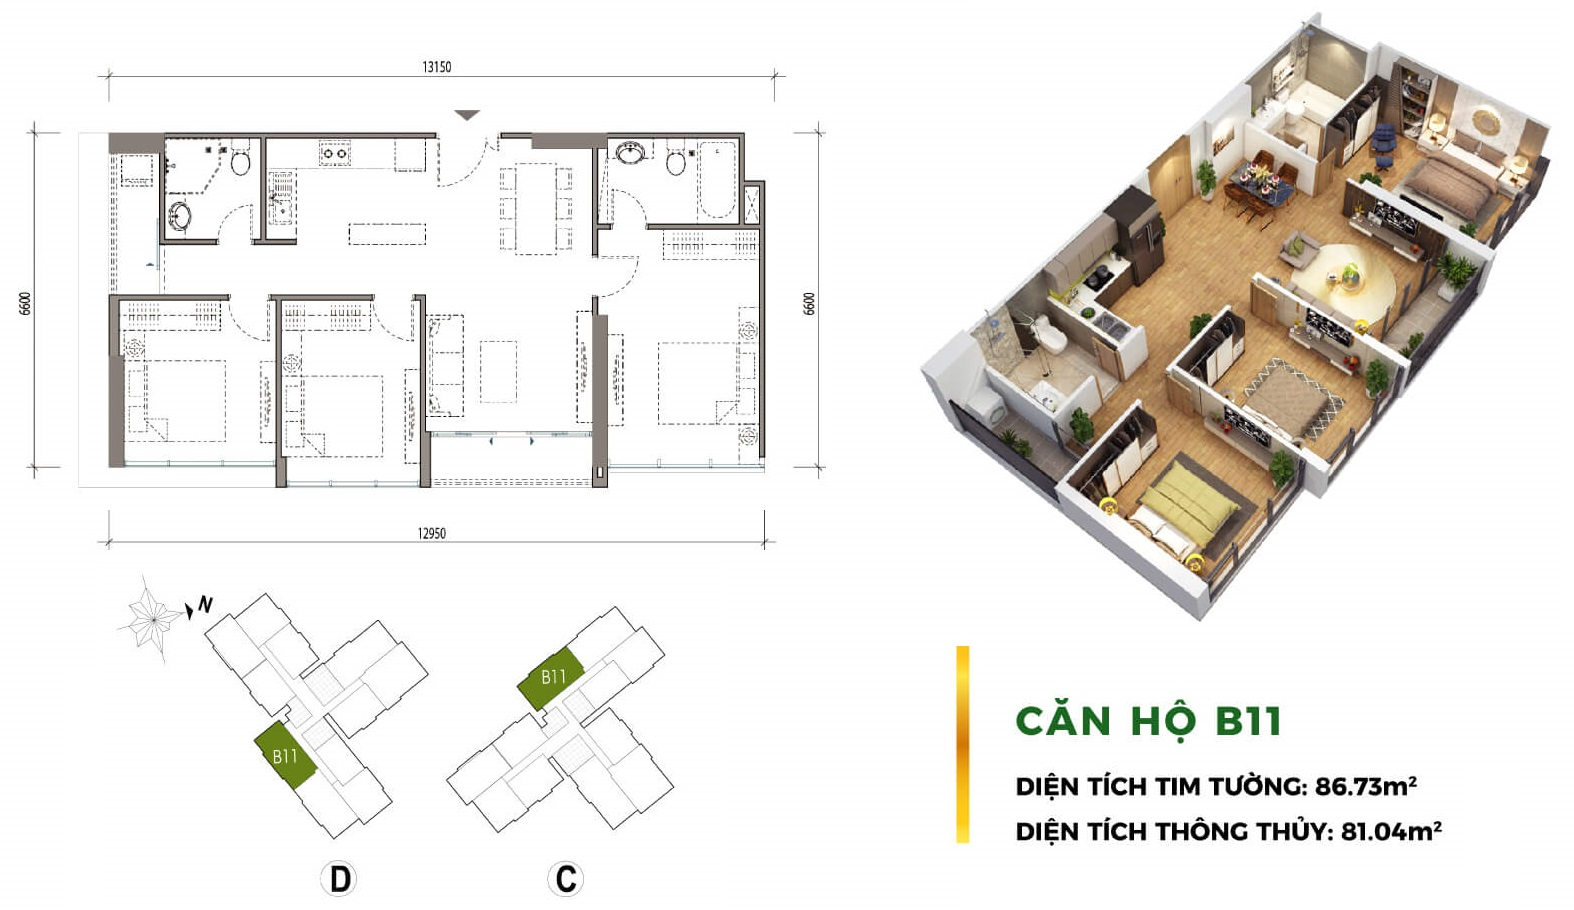 thiet-ke-can-ho-b11-du-an-ecogreen-saigon